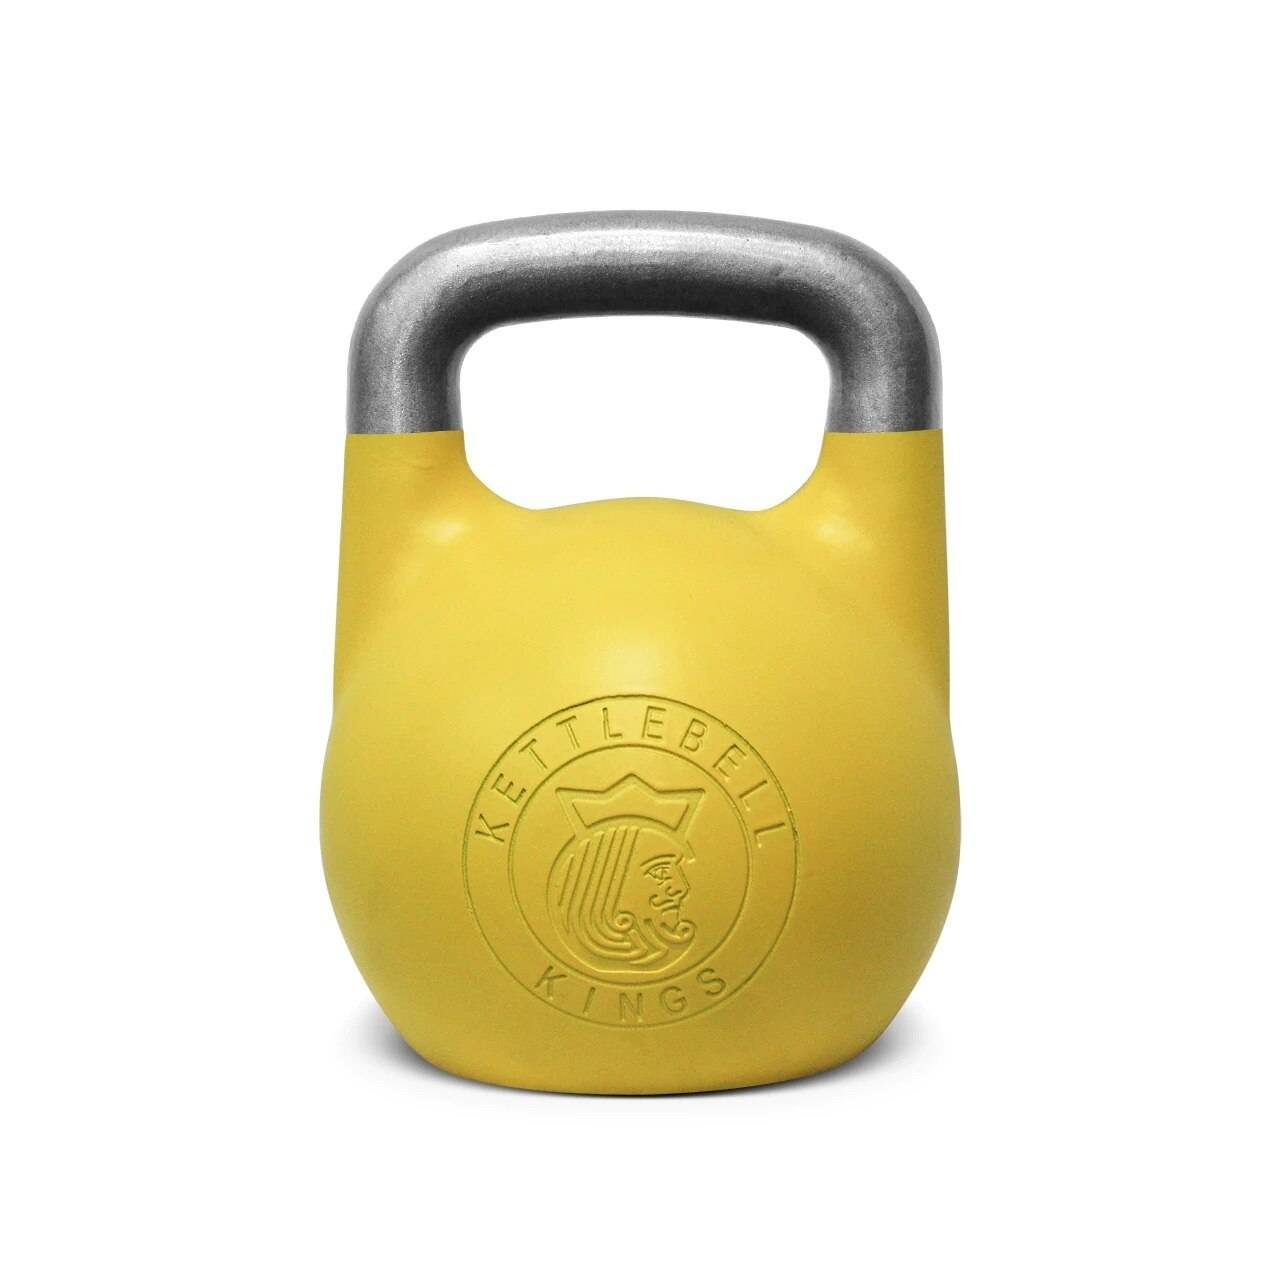 Competition Kettlebell - What makes a great Compeition Kettlebell